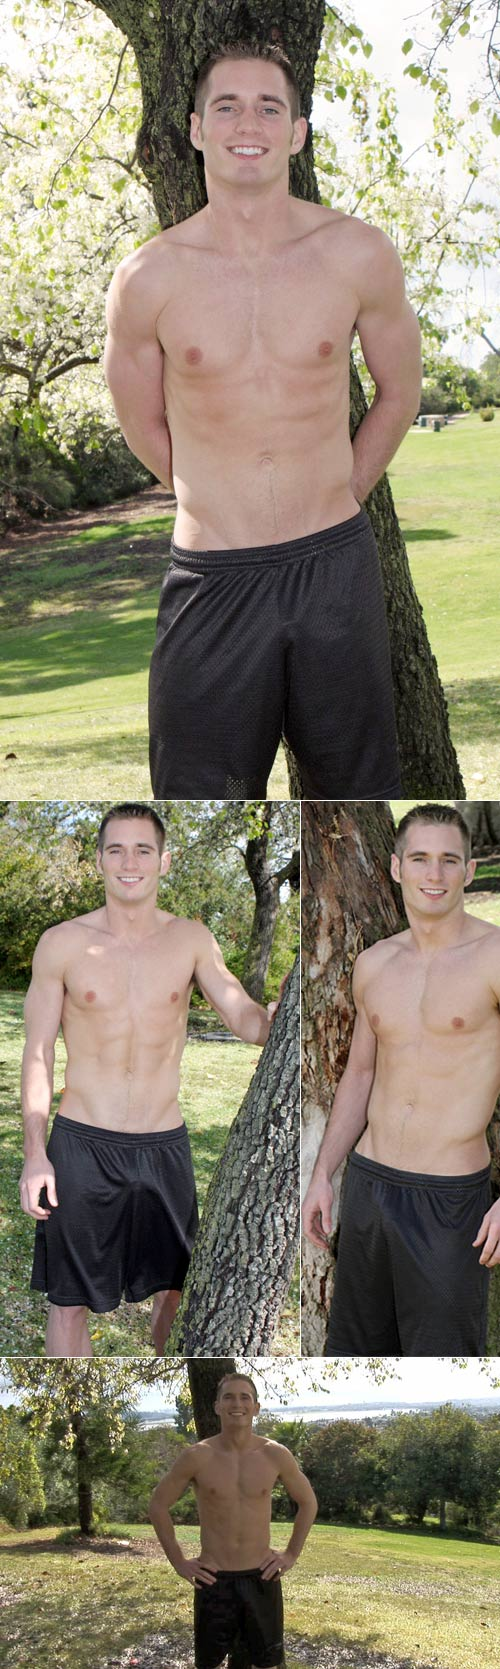 Riley at SeanCody